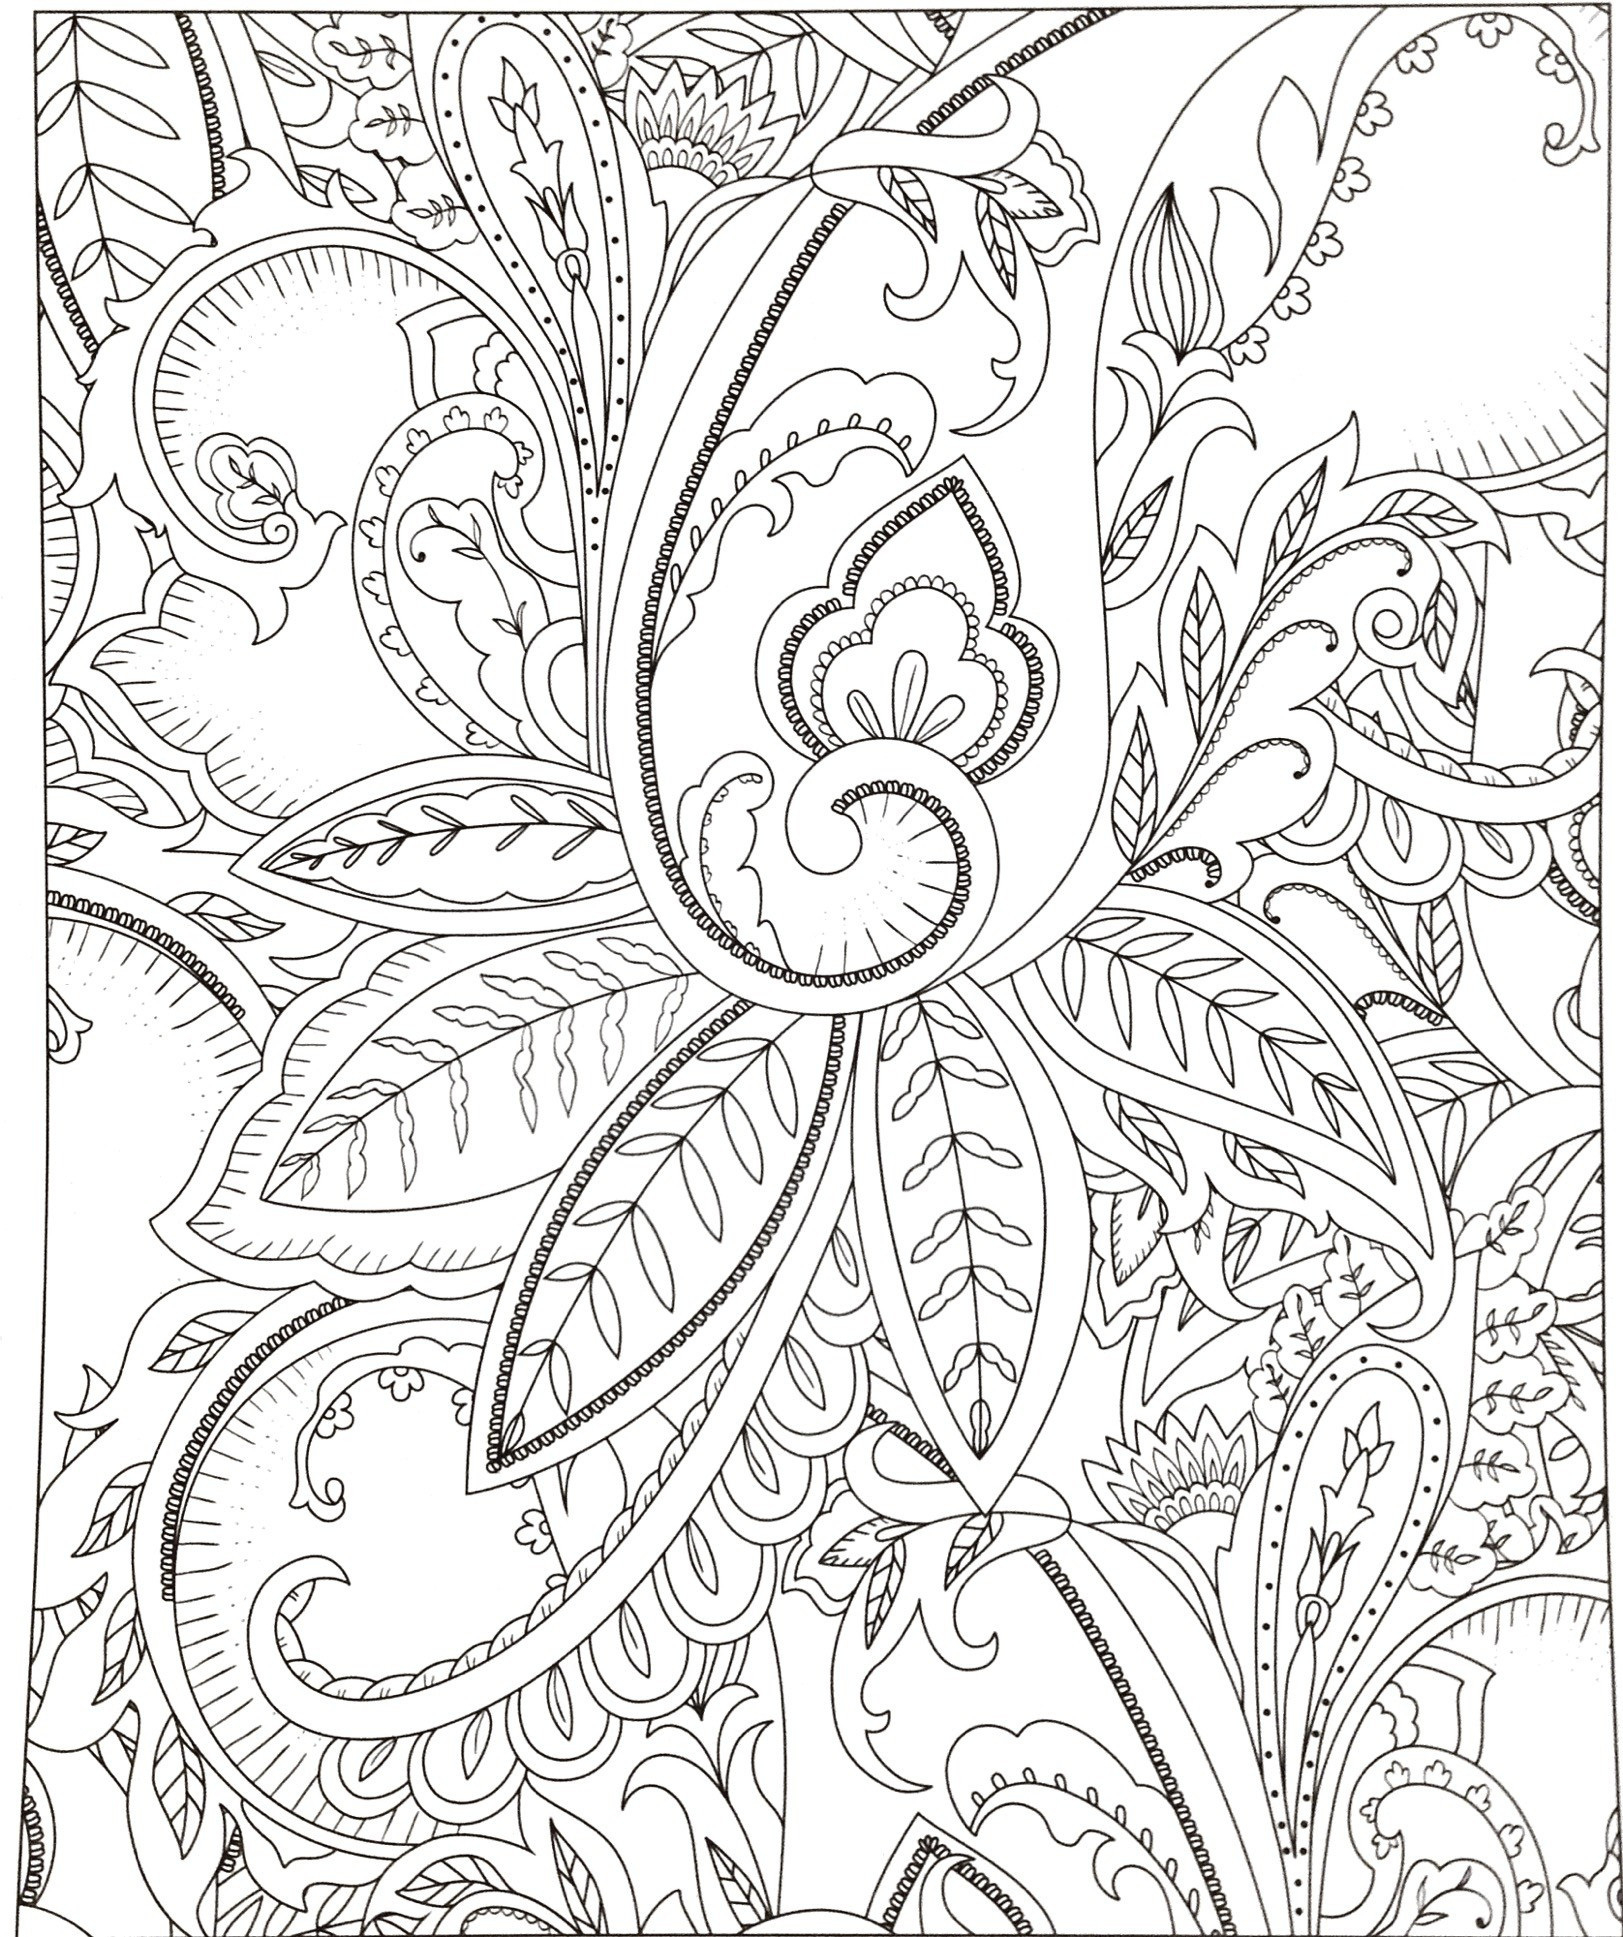 coloring pages birds Download-Amazing Coloring Pages Birds As If Free Printable Bird Coloring Pages Bird Coloring Pages Free Fabulous 13-b